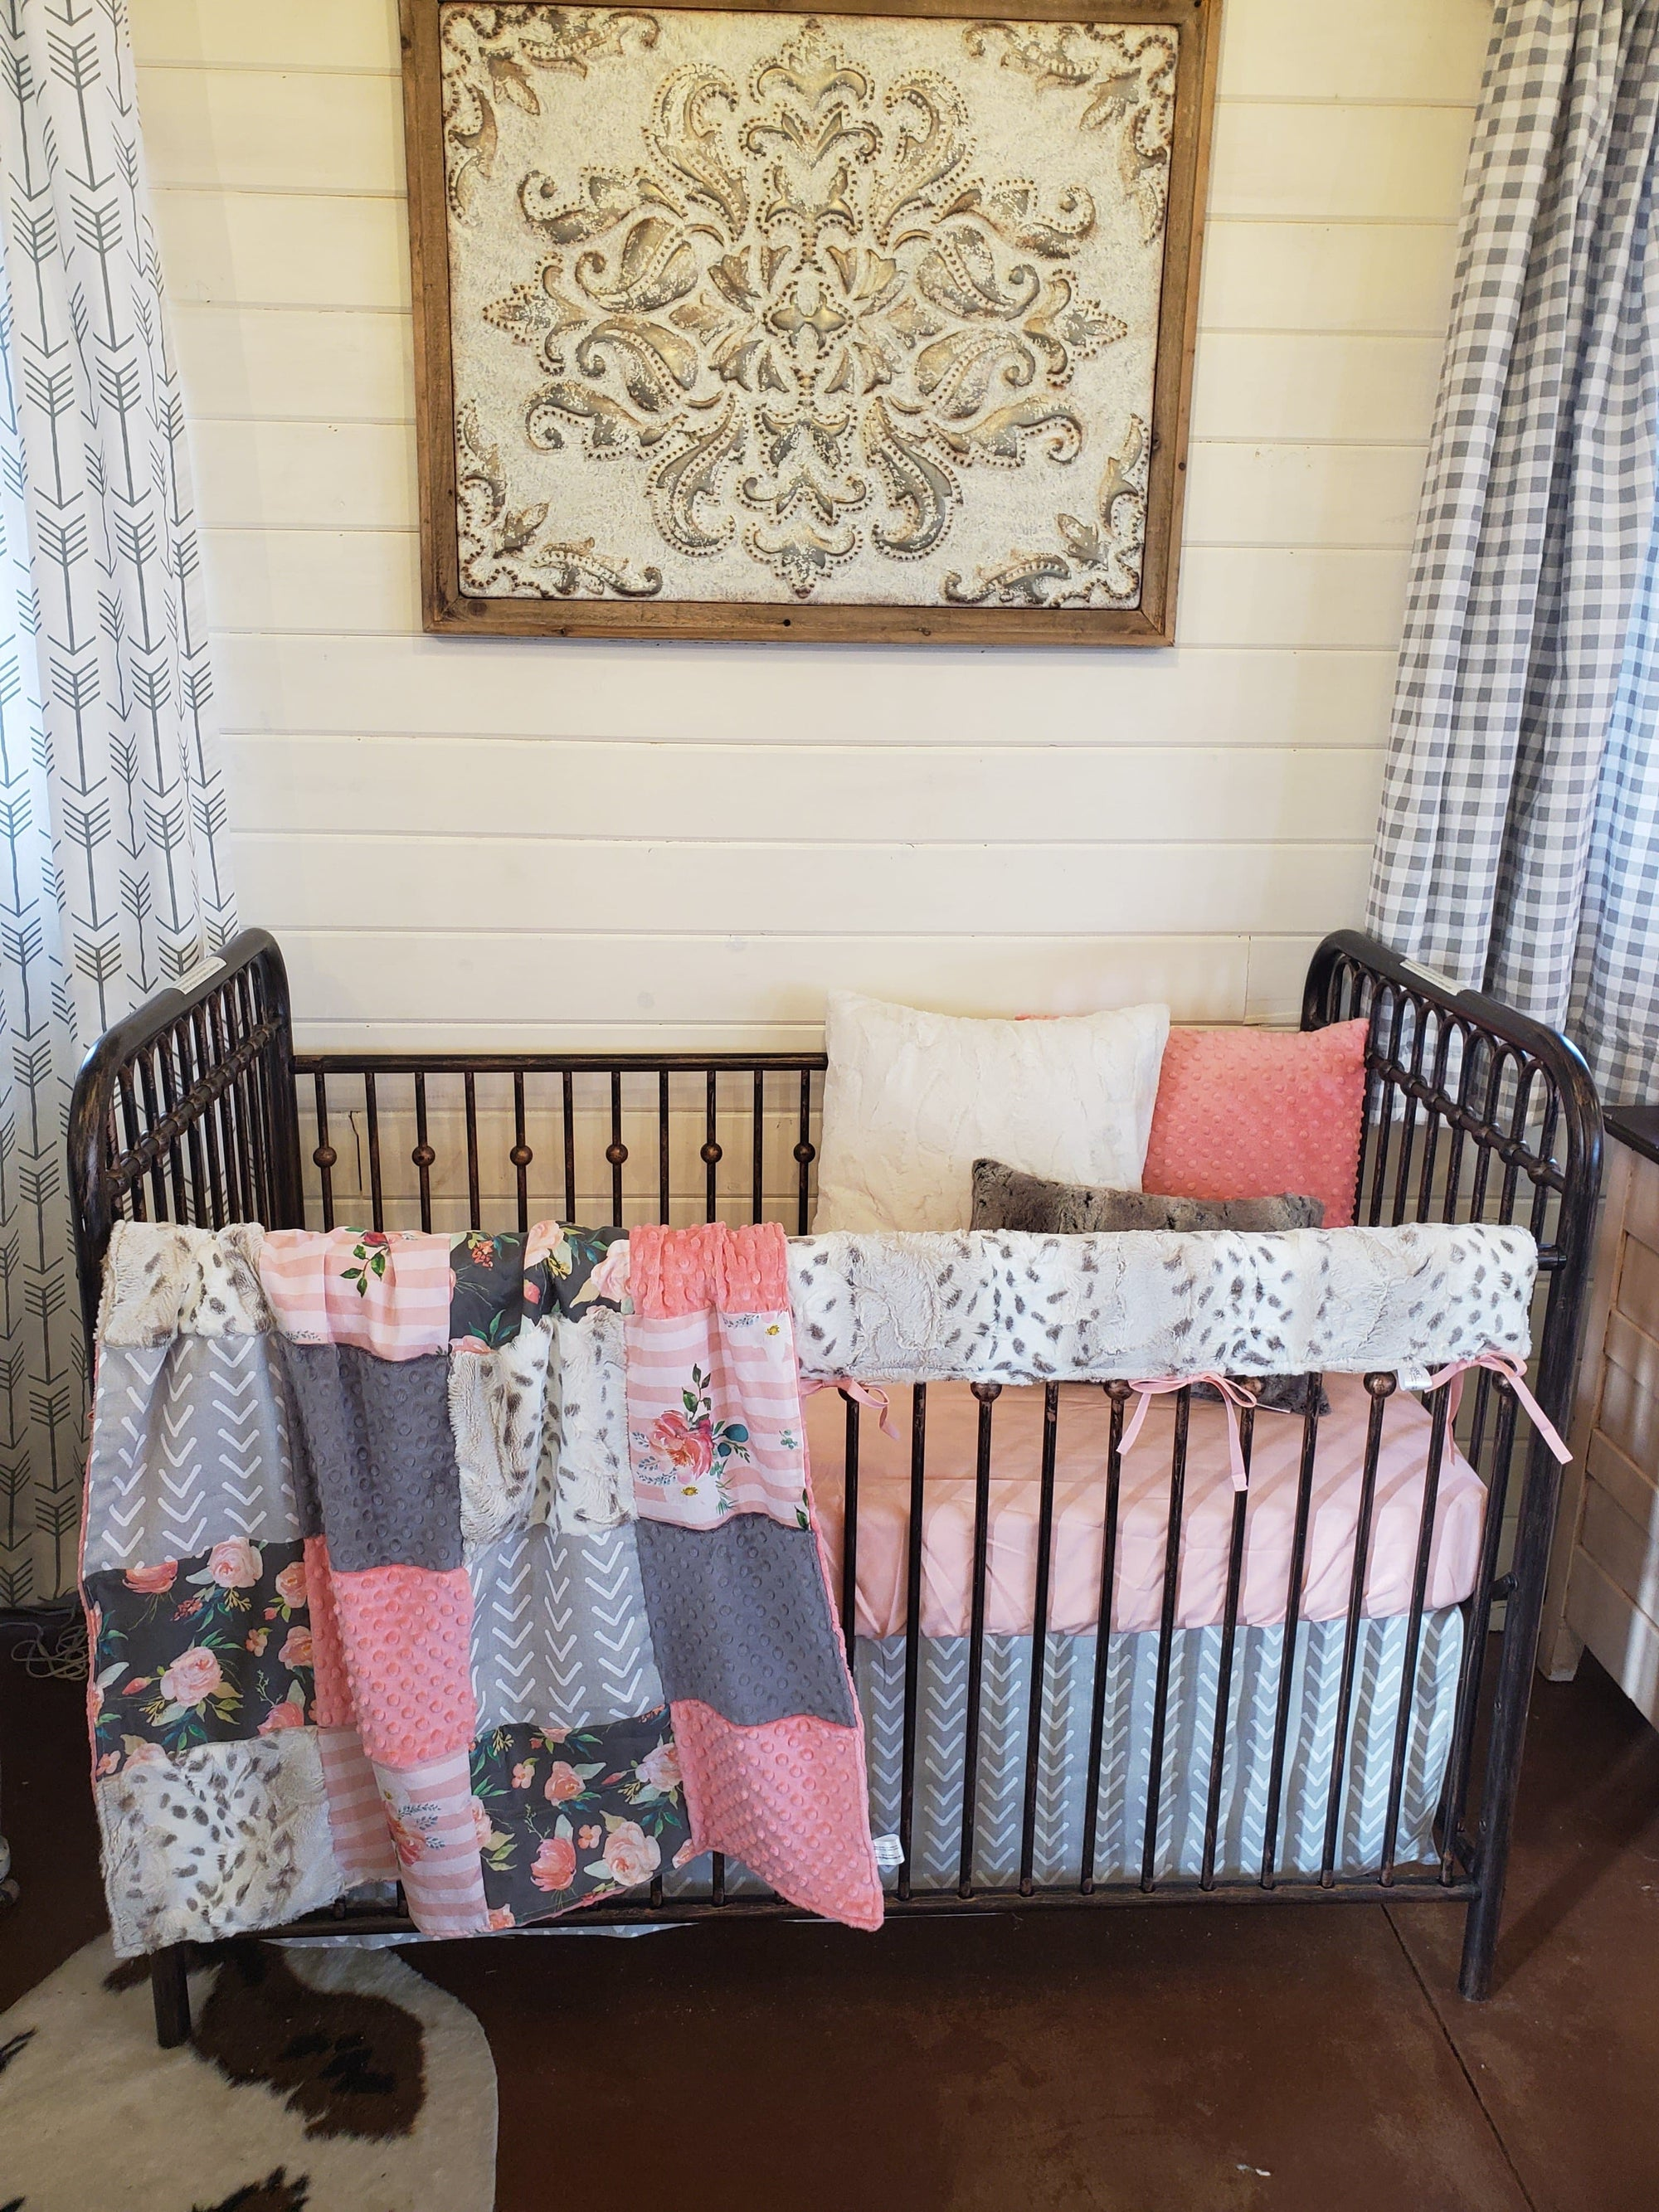 Custom Girl Crib Bedding - Floral Stripe and Snow Leopard Minky Floral Collection